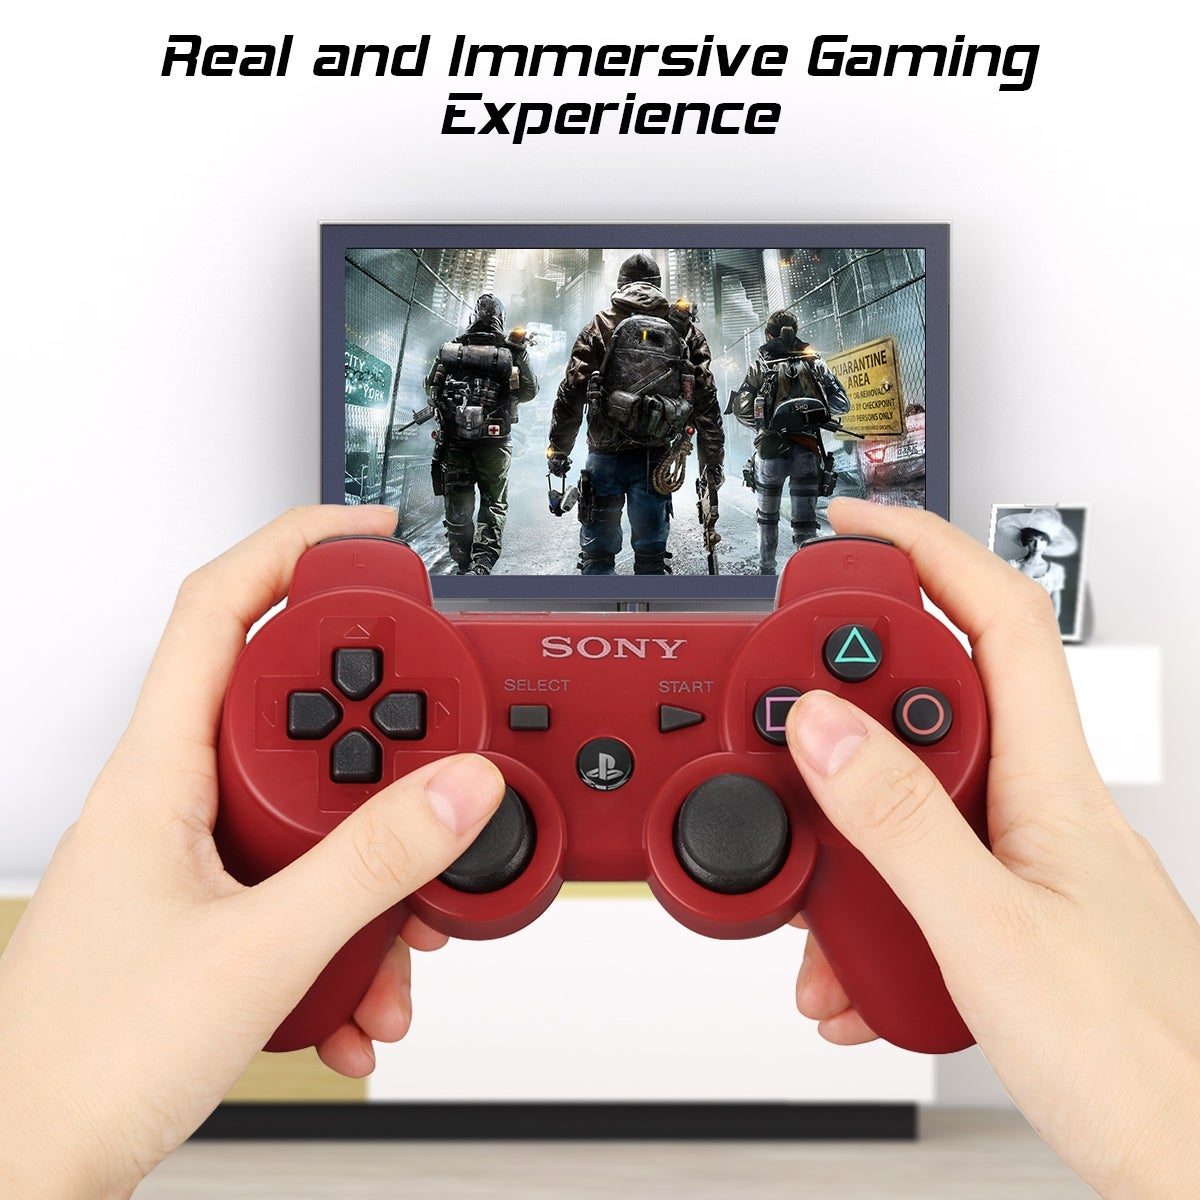 Sony Dualshock 3 PS3 Wireless Controller Playstation 3 Games Remote Control  Bluetooth Sixaxis Gamepad